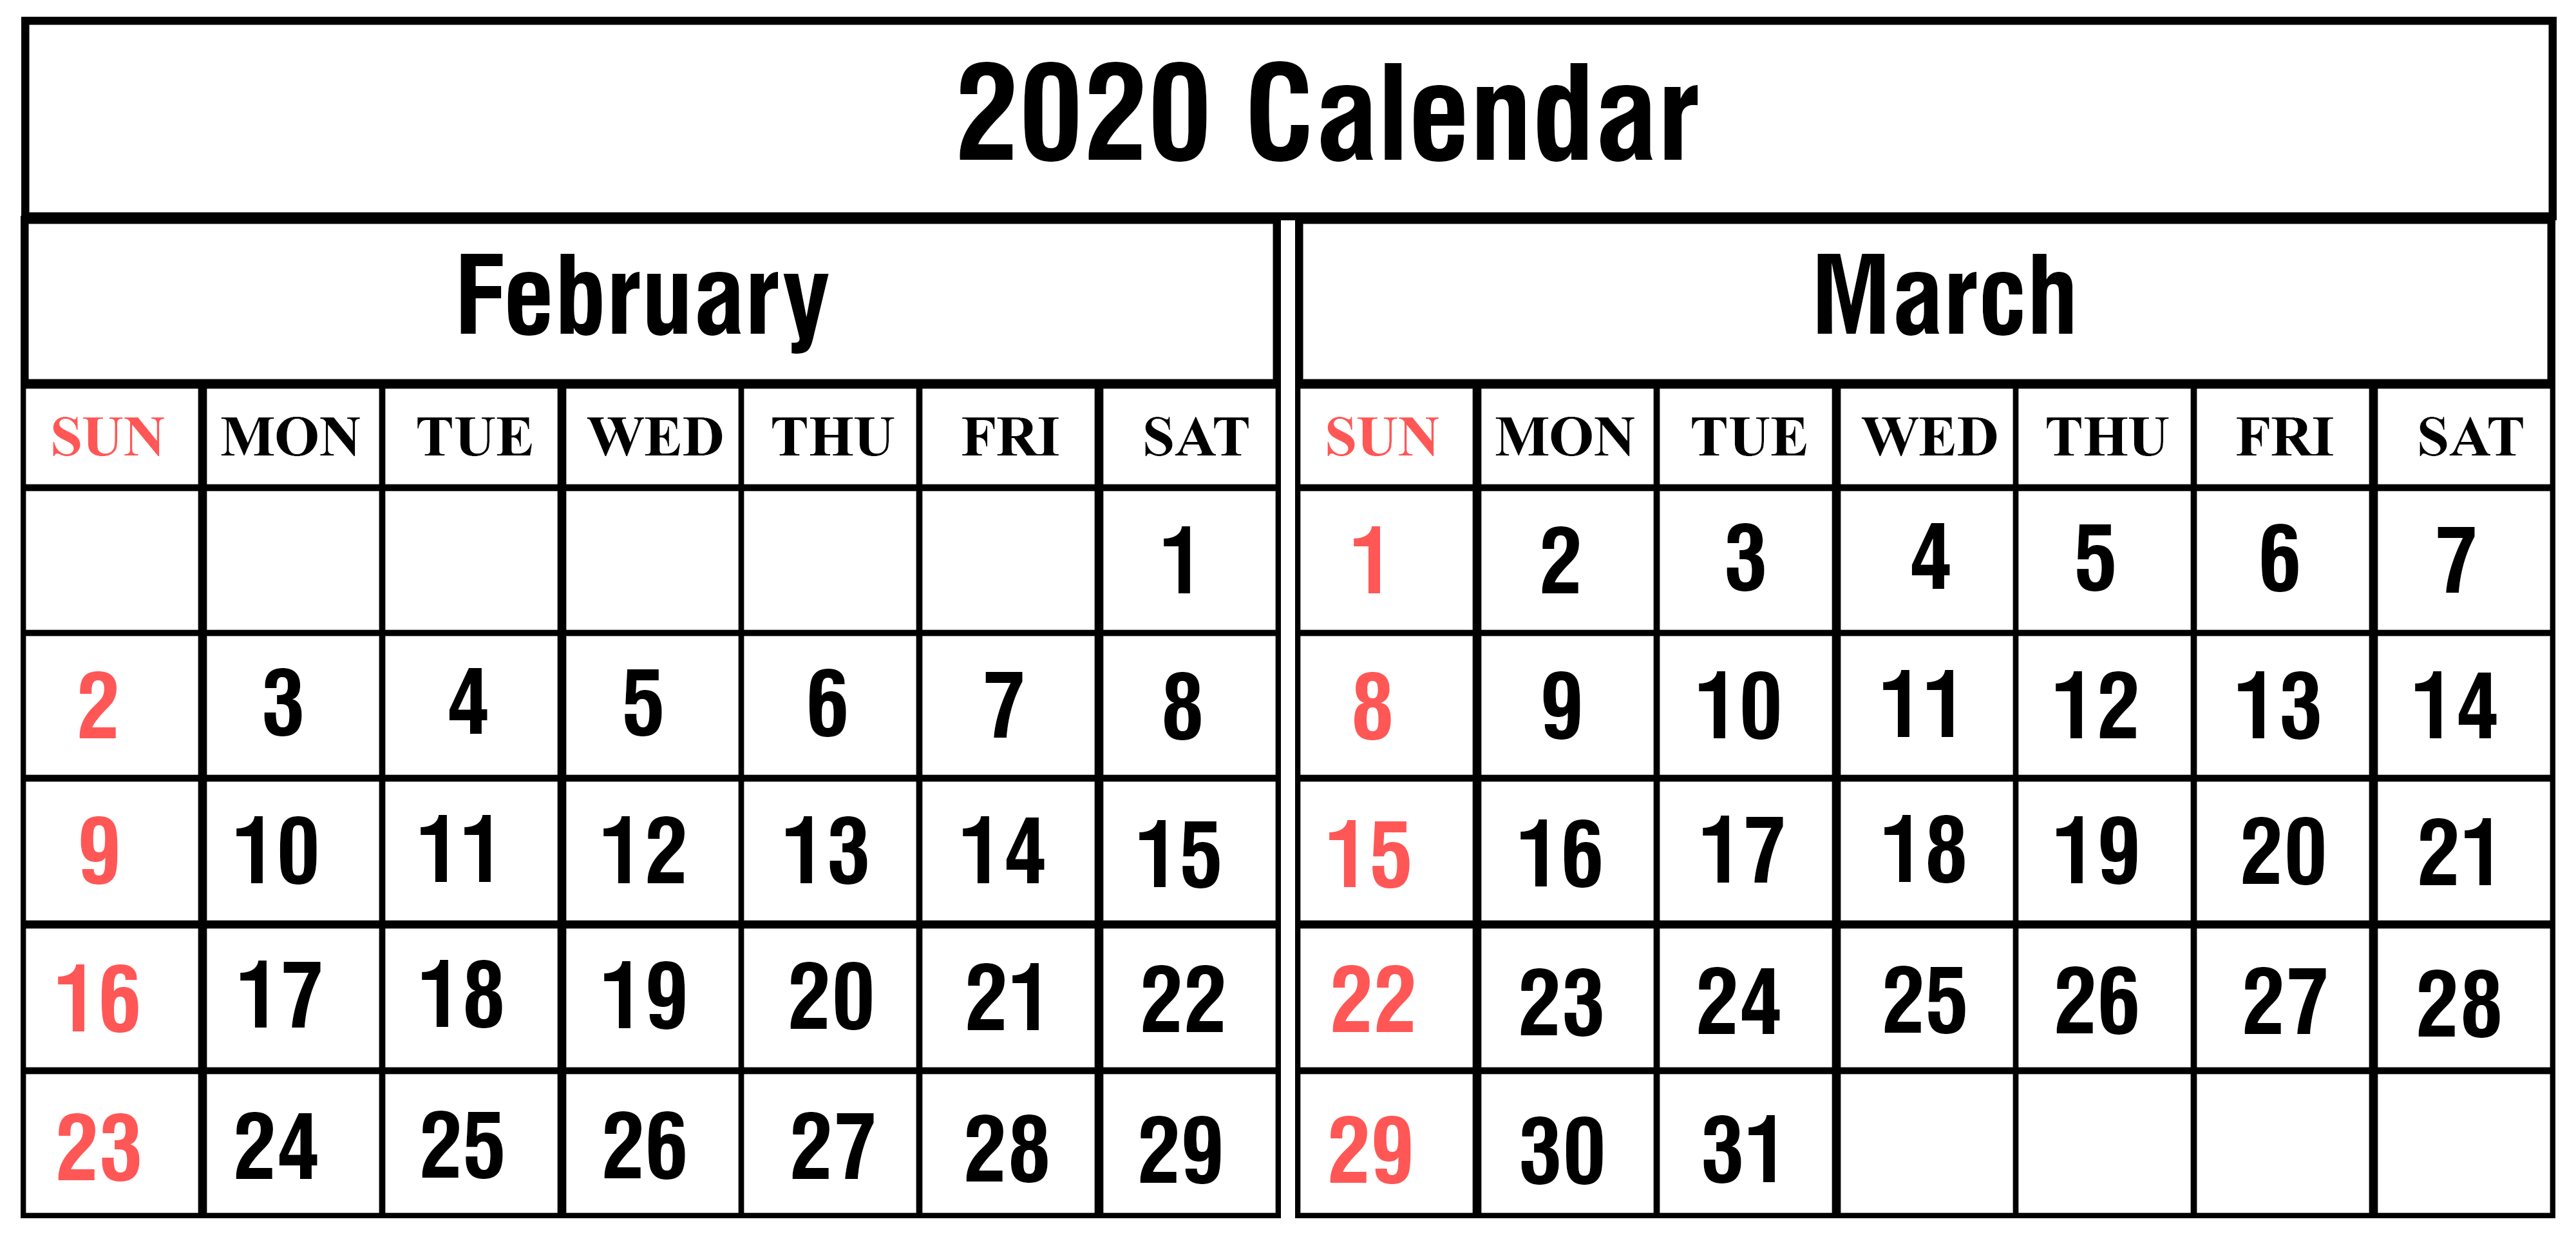 Free February & March 2020 Printable Calendar Templates Download pertaining to Free 8/2019 -5/ 2020 Printable Calendar